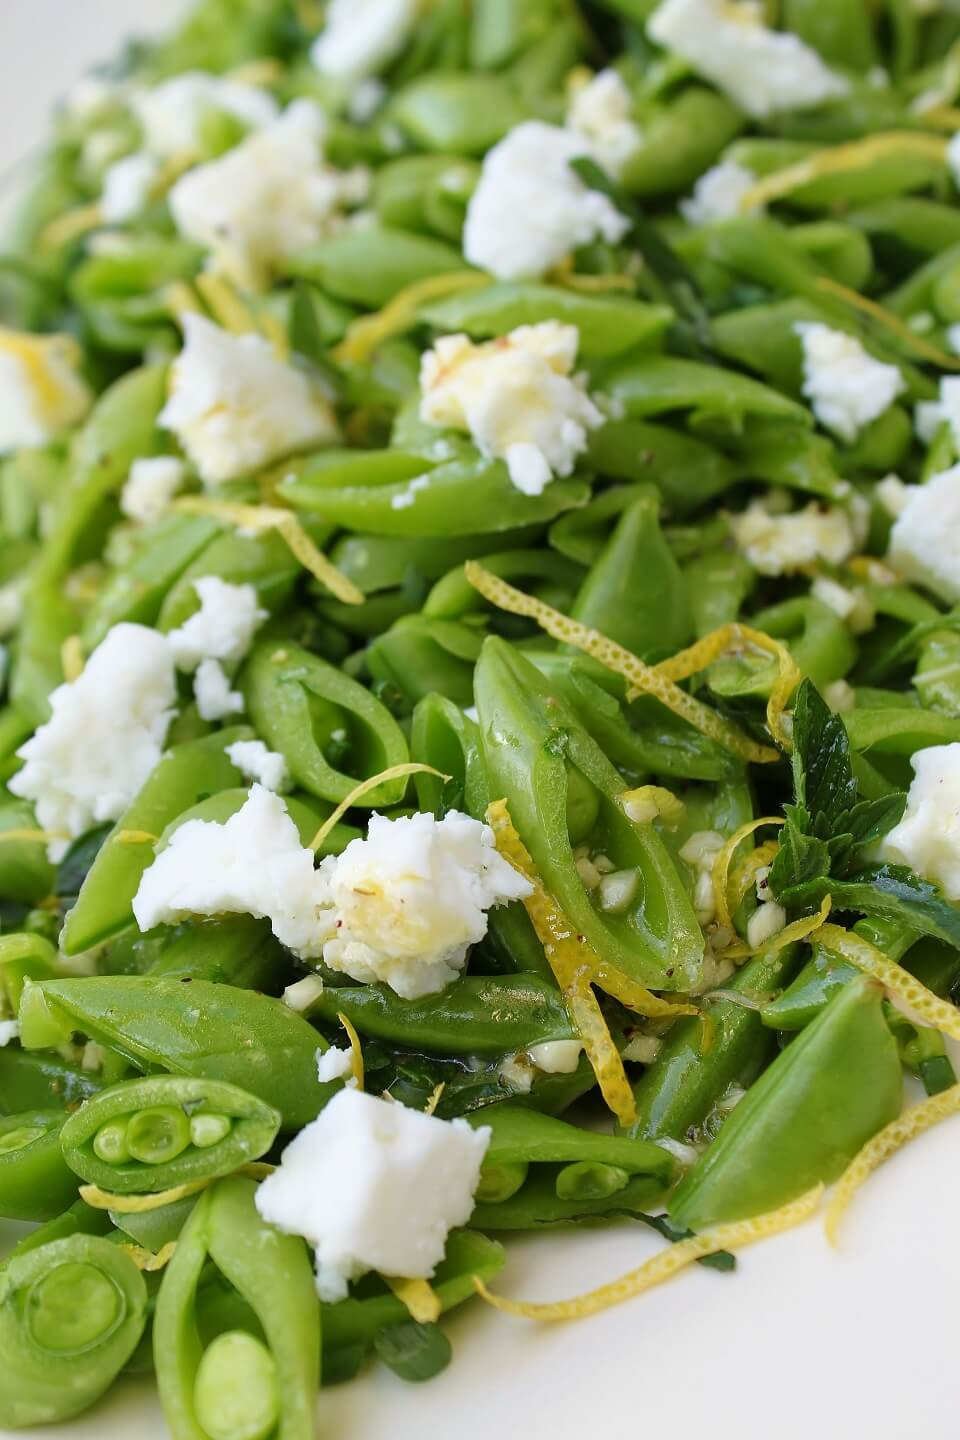 A close up of a bright green chopped snap pea salad with lemon zest, white feta, and herbs.